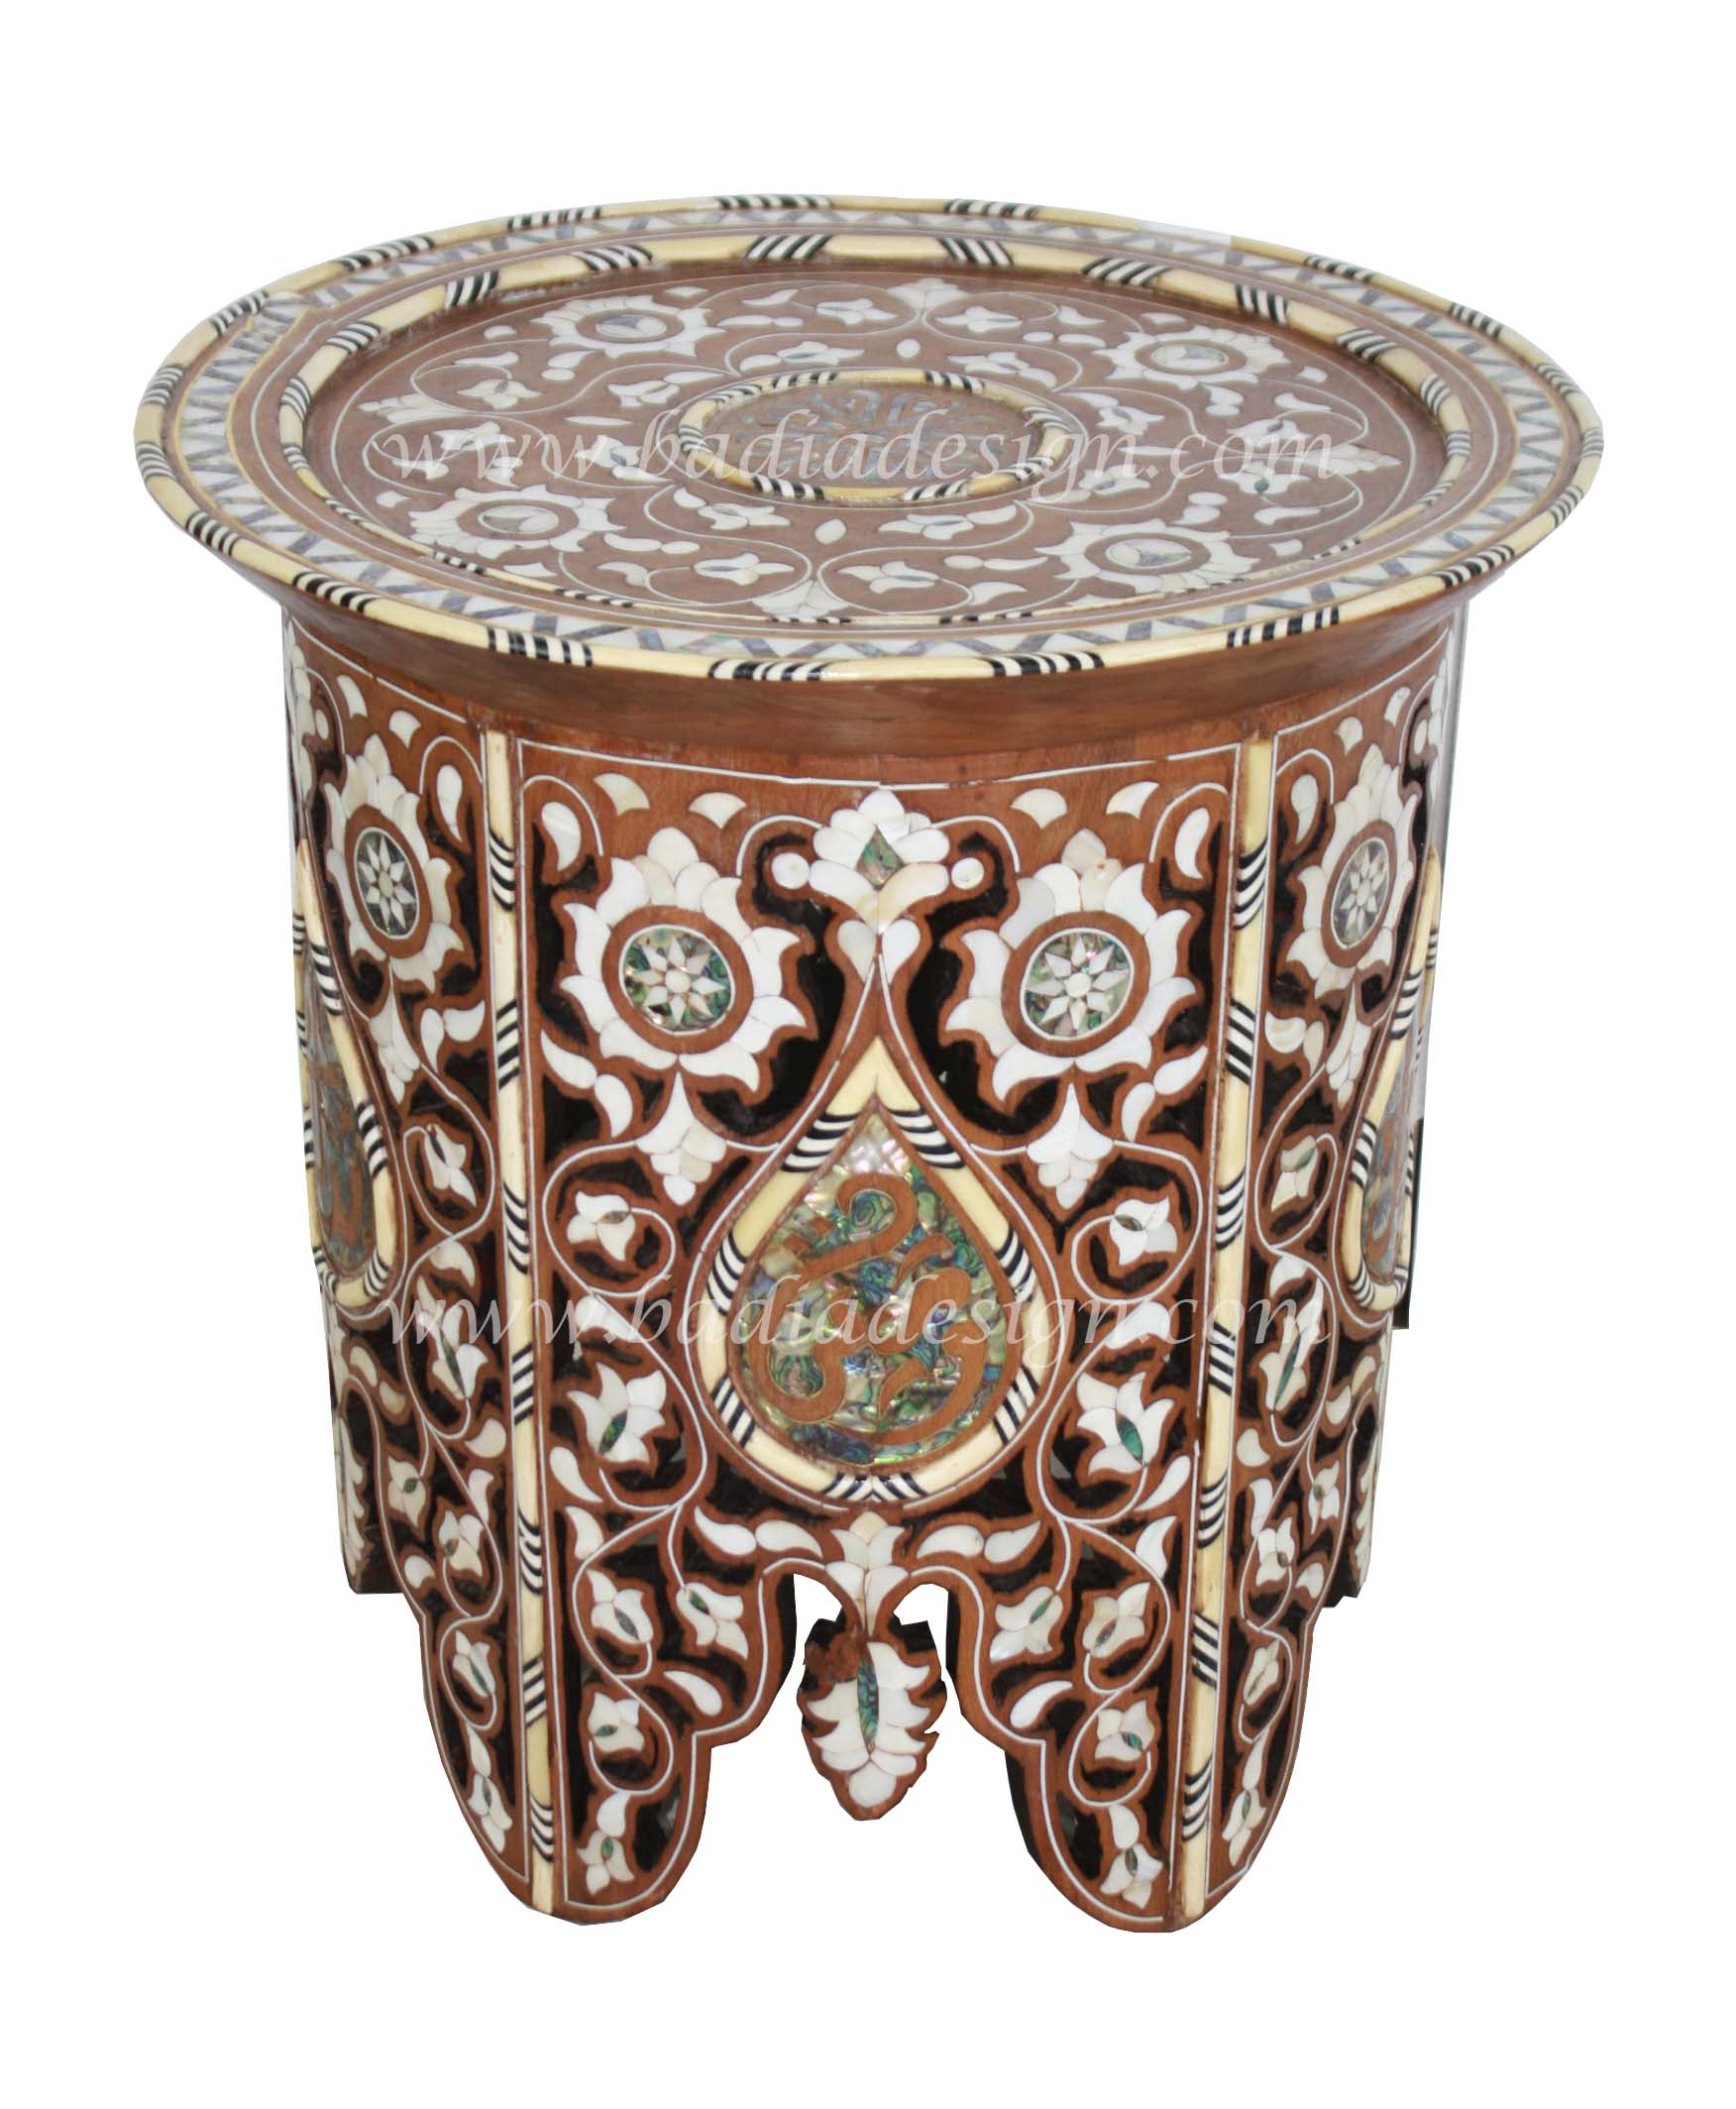 moroccan-mother-of-pearl-side-table-mop-st057-1.jpg